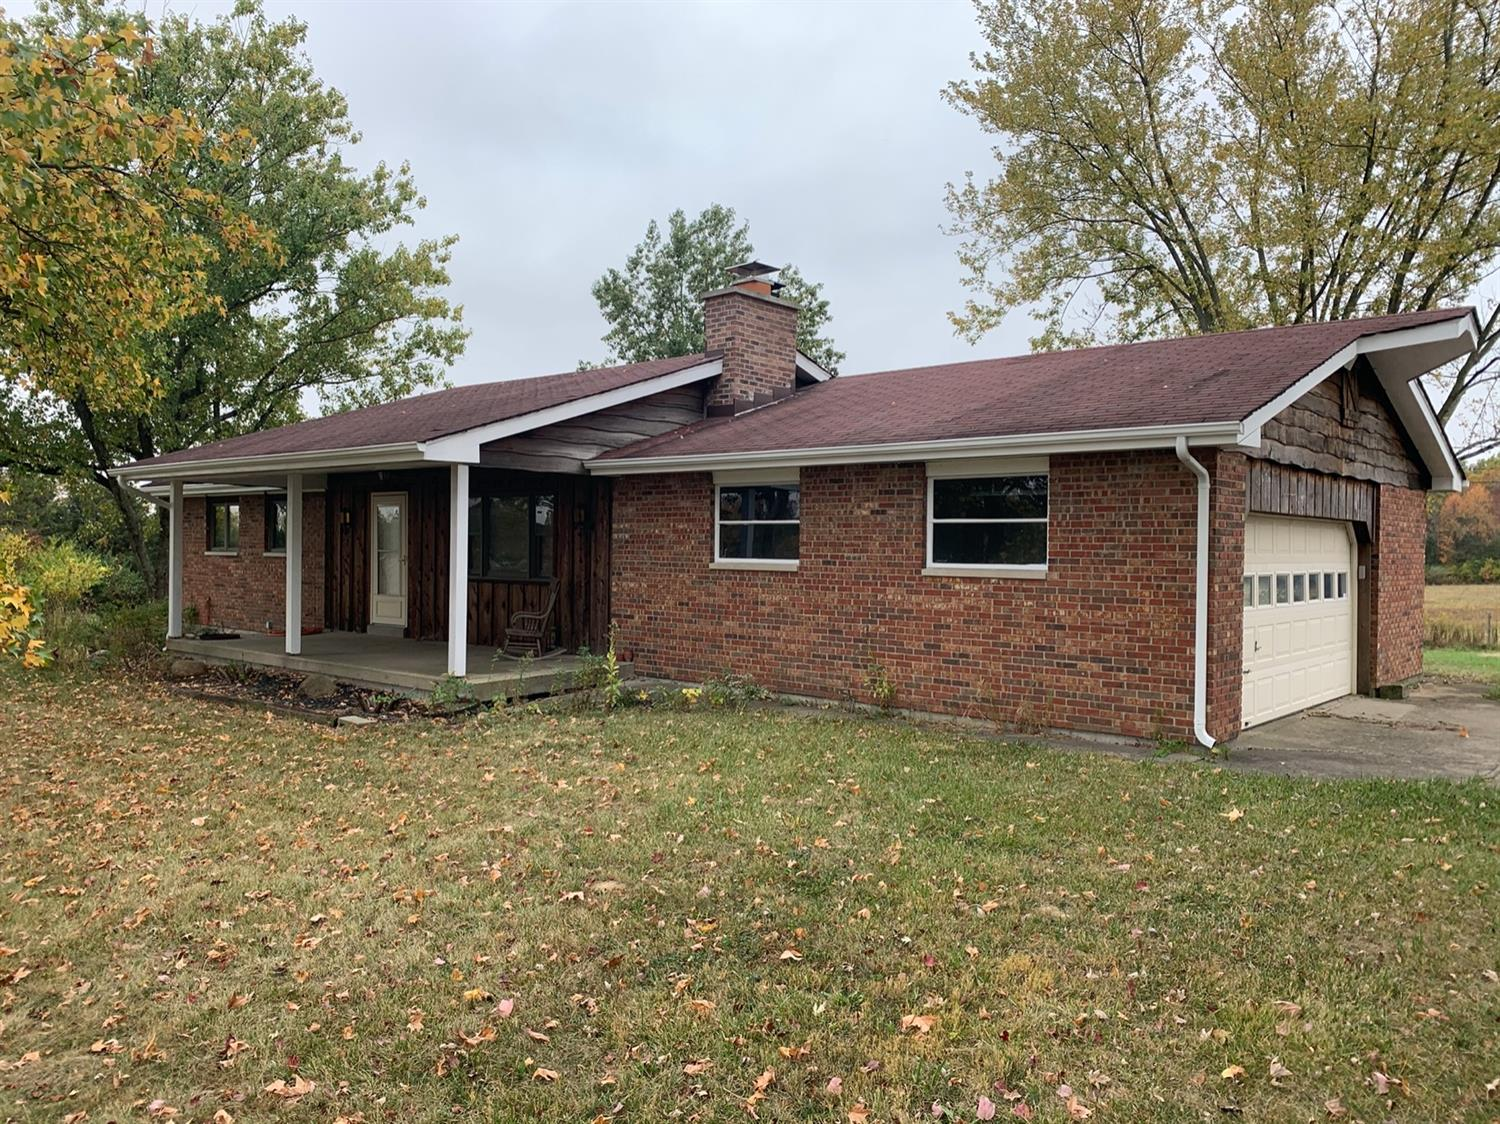 Photo 1 for 1685 Morman Rd Hanover Twp., OH 45013